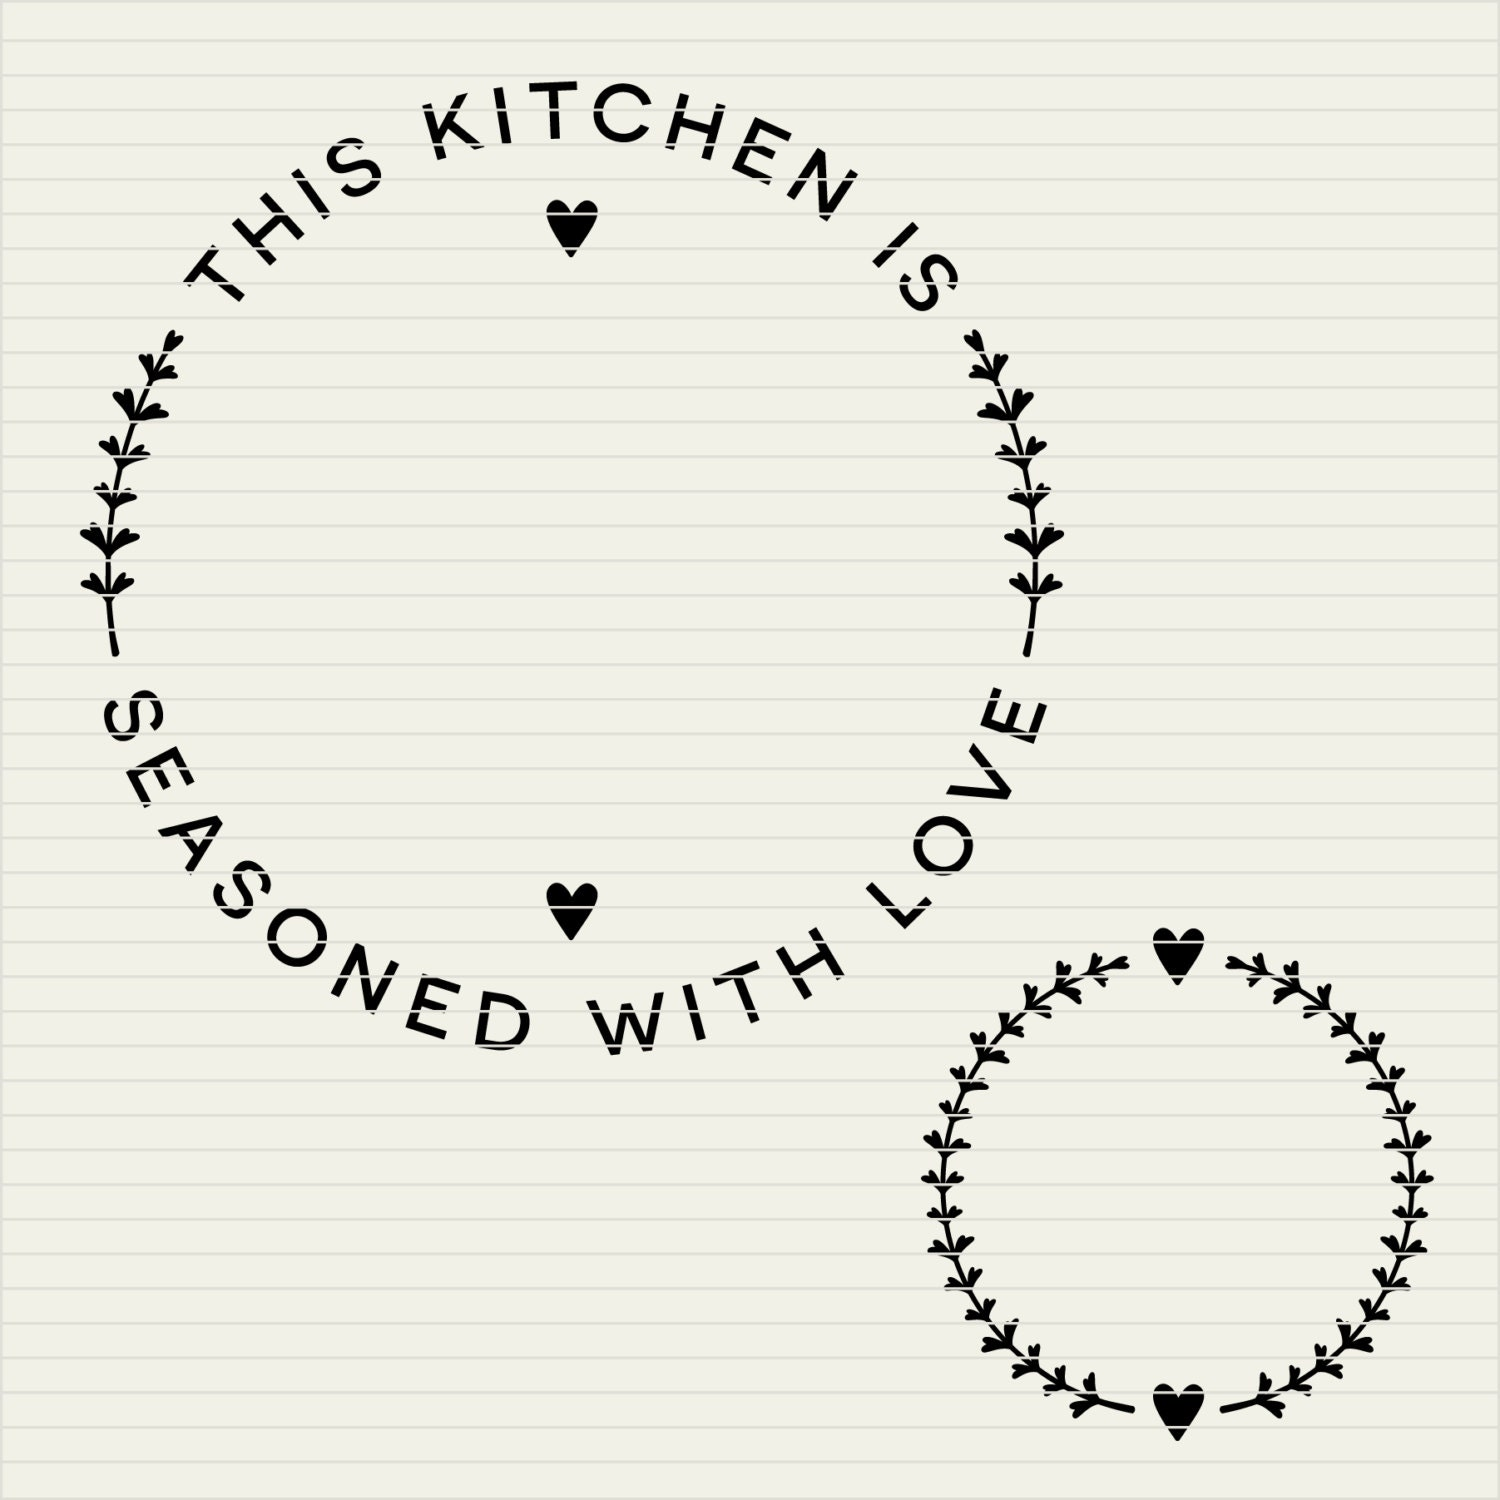 Diy Personalize Svg Kitchen Seasoned With Love Frame